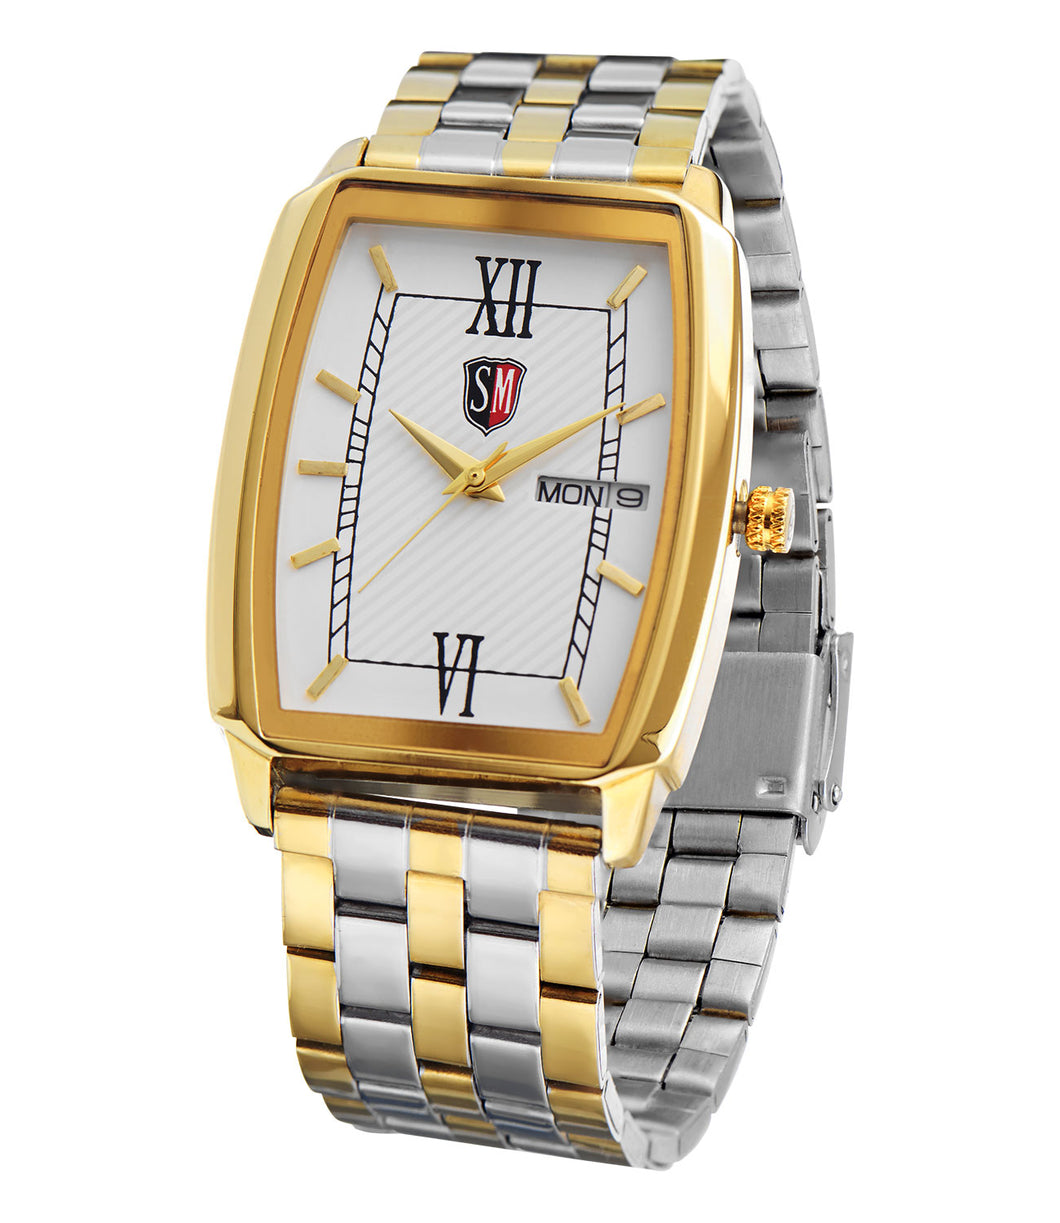 SM MEN'S (DAY & DATE) SQUARE TWO TONE GOLD WATCH